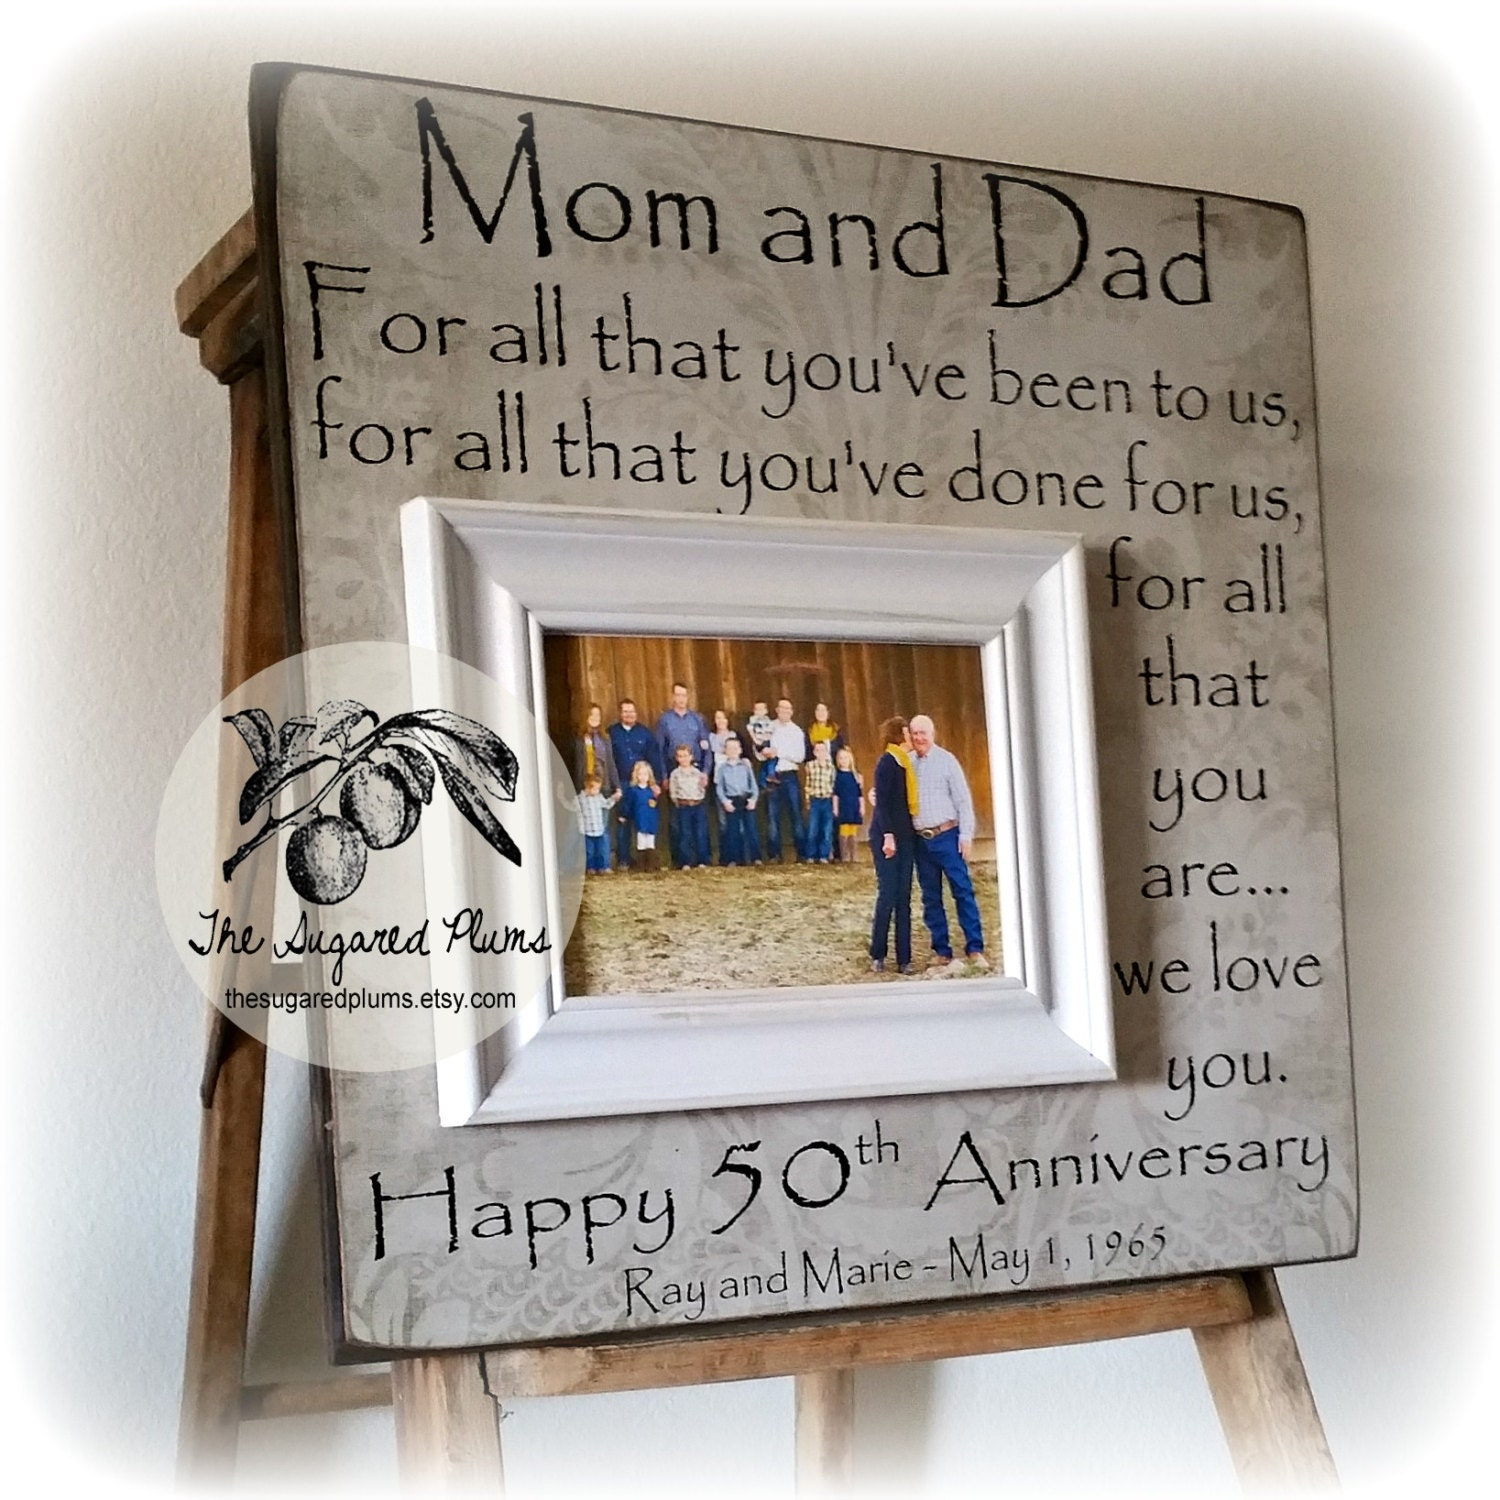 Golden Wedding Anniversary Gift Ideas For Parents : 50th Anniversary Gifts Parents Anniversary Gift For All That